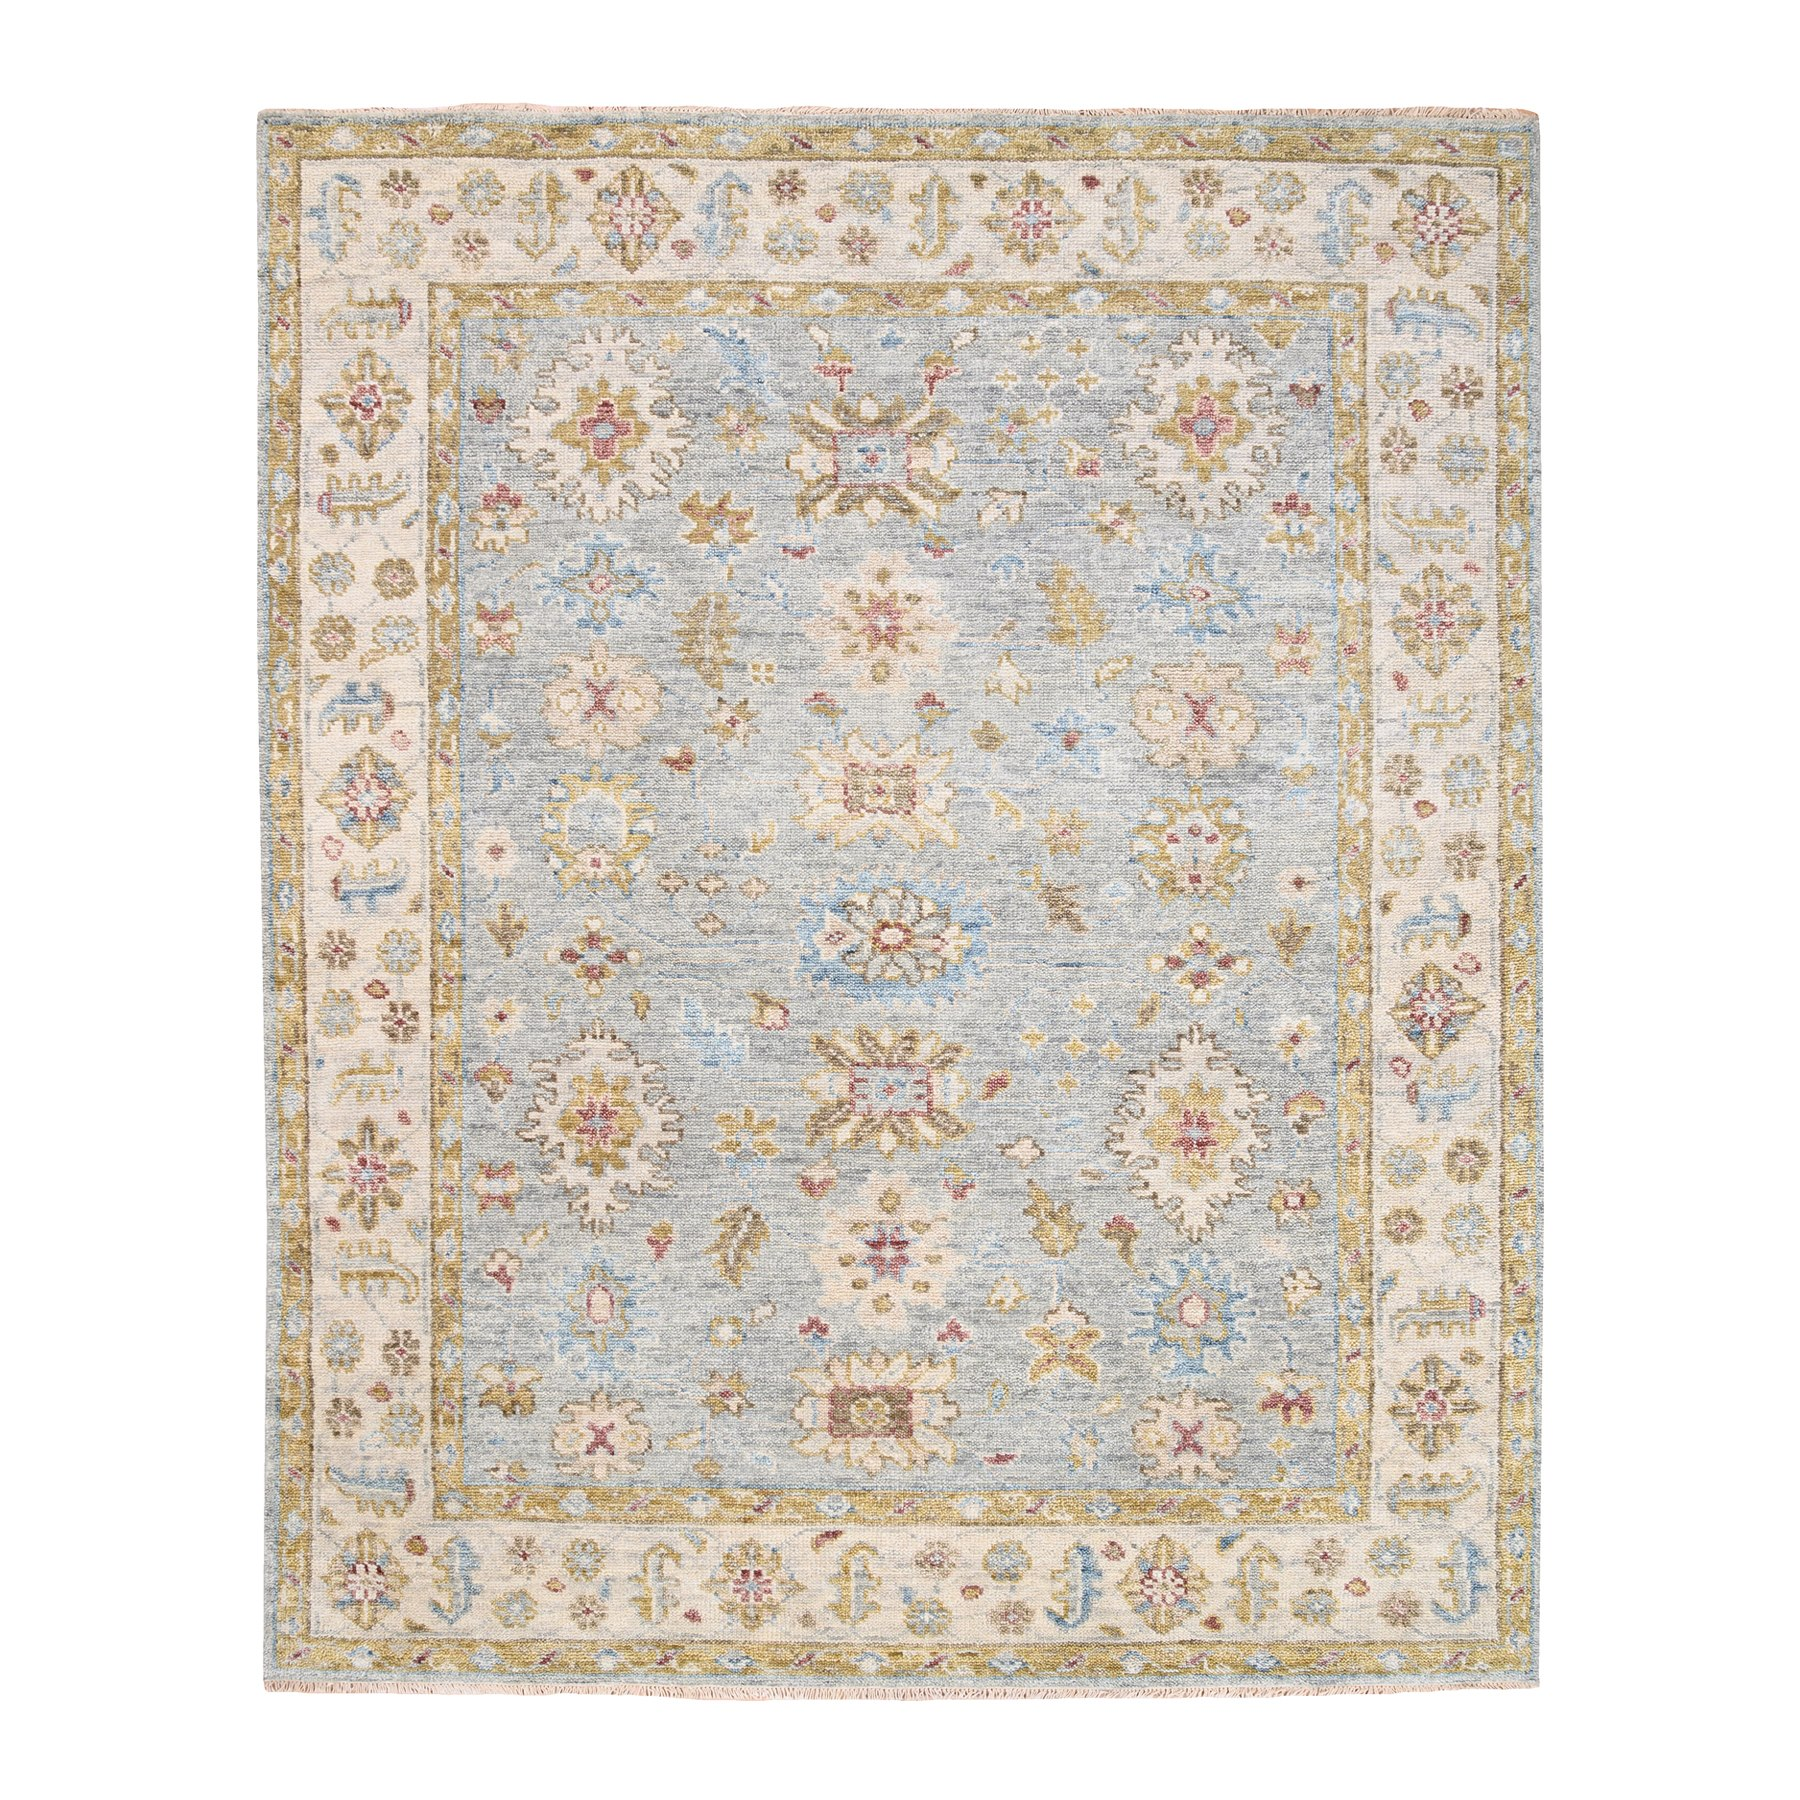 "8'1""x10' Silver Supple Collection Natural Wool Oushak and Floral Design Hand Knotted Oriental Rug"